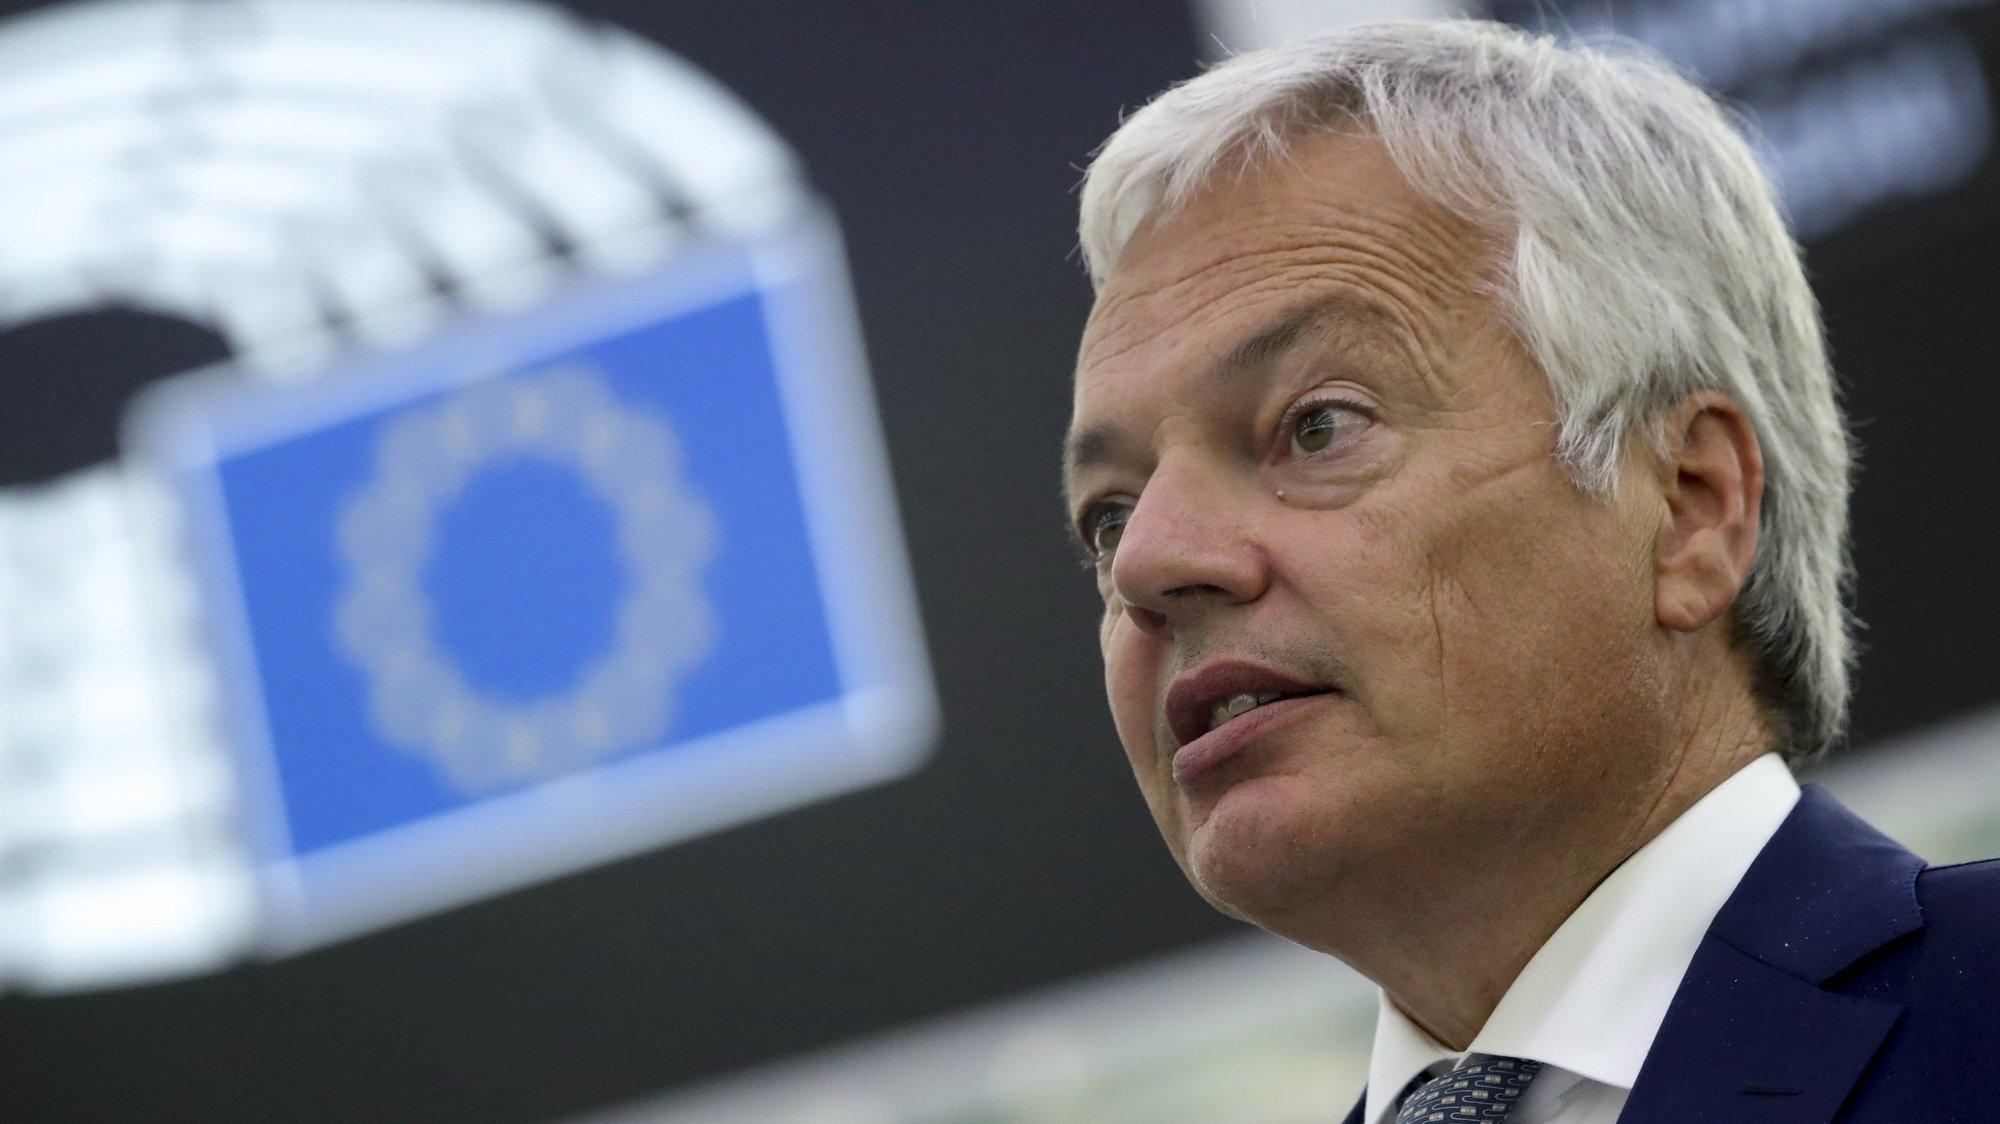 epa09469647 European Justice Commissioner, Didier Reynders, addresses the European Parliament plenary session in Strasbourg, France, 15 September 2021.  EPA/YVES HERMAN / POOL  MAXPPP OUT